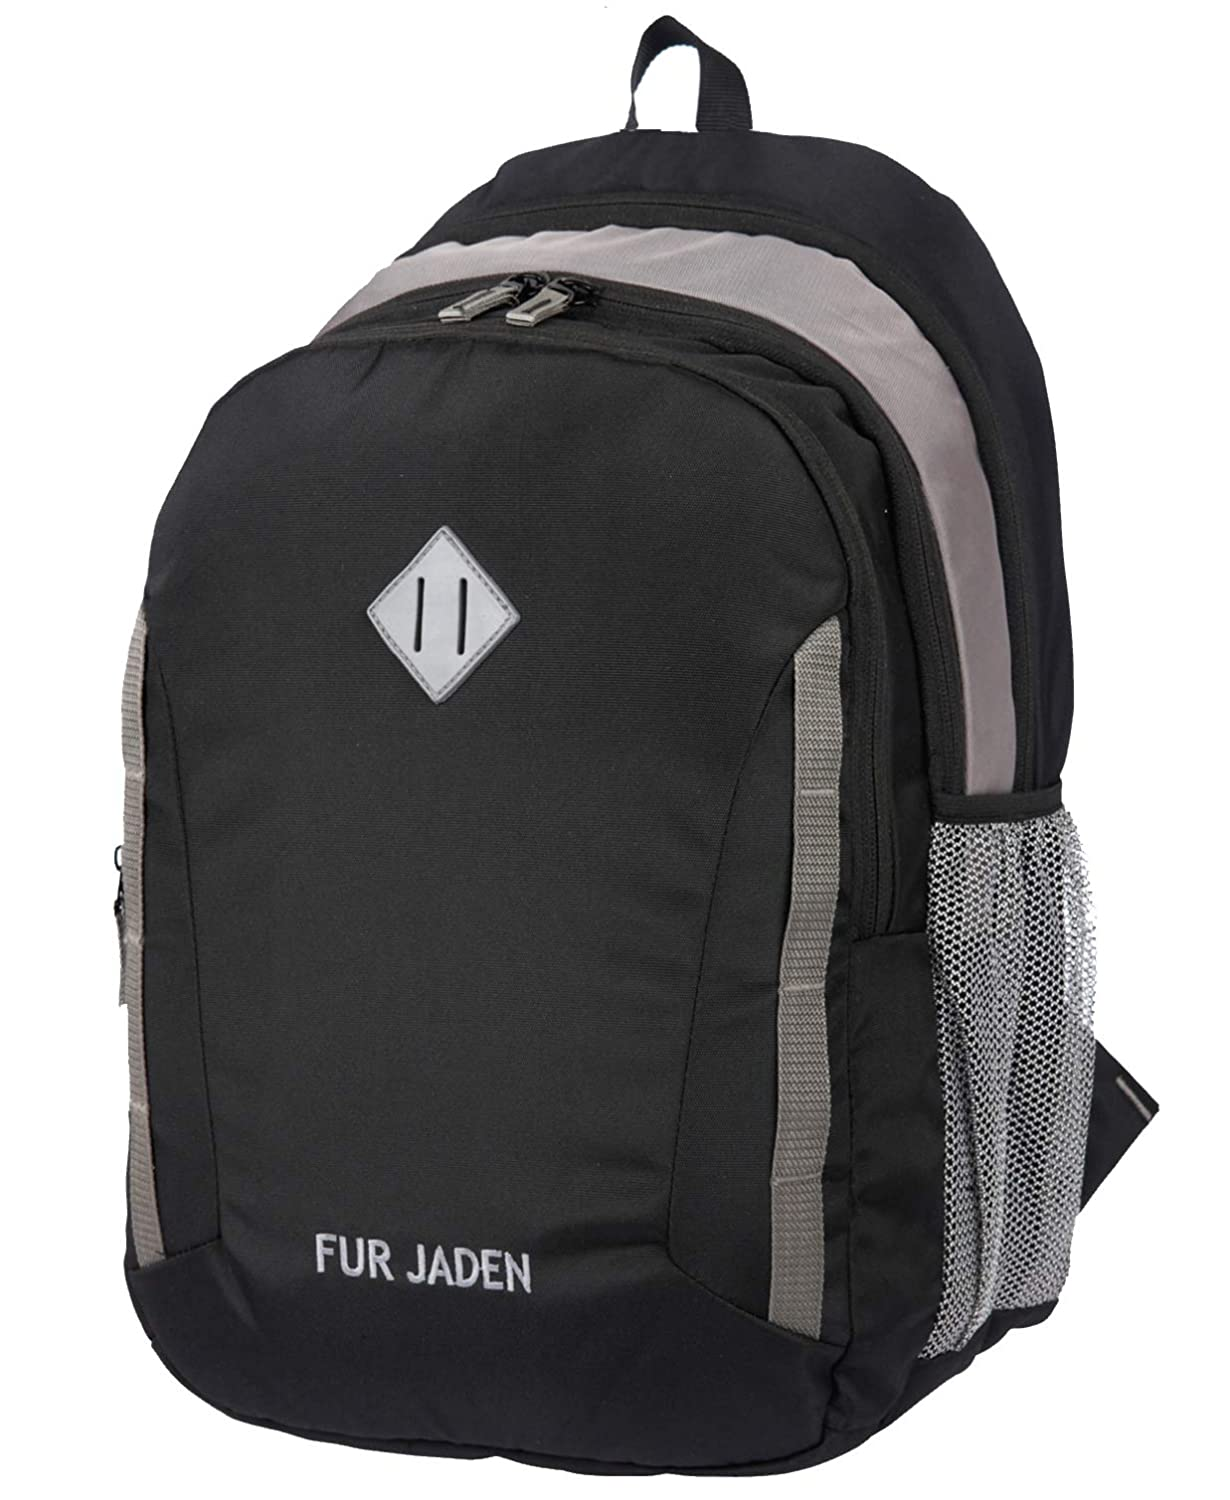 Fur Jaden 30L Black 15.6 Inch Laptop Backpack Casual Daypack for School College and Office (Black)